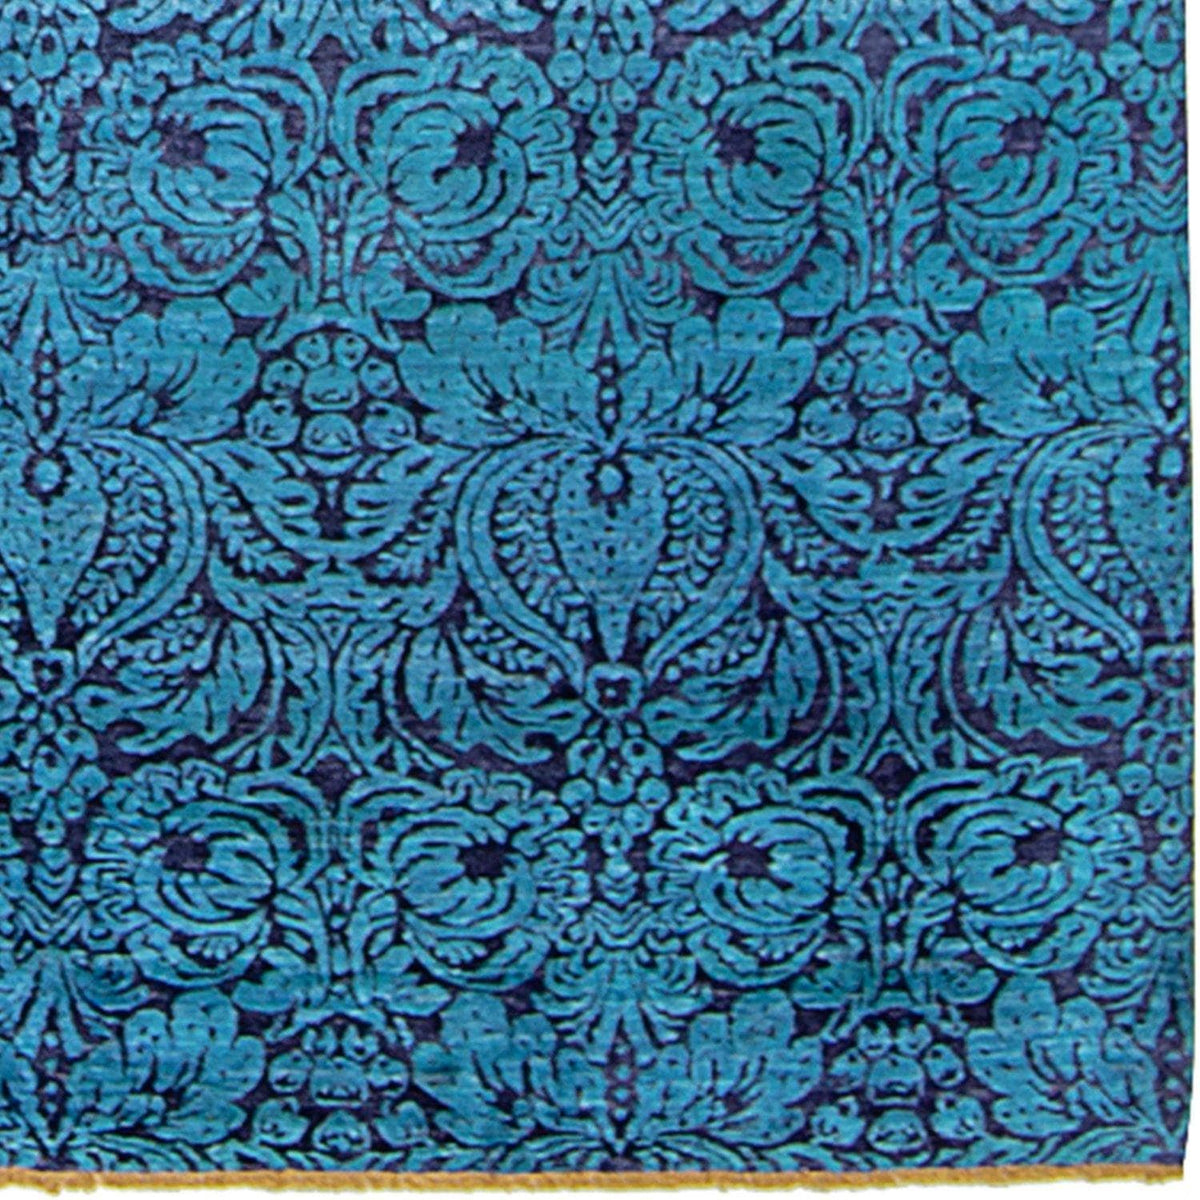 Contemporary Hand-knotted NZ Wool and Bamboo Silk Damask Rug 197cm x 299cm Persian-Rug | House-of-Haghi | NewMarket | Auckland | NZ | Handmade Persian Rugs | Hand Knotted Persian Rugs